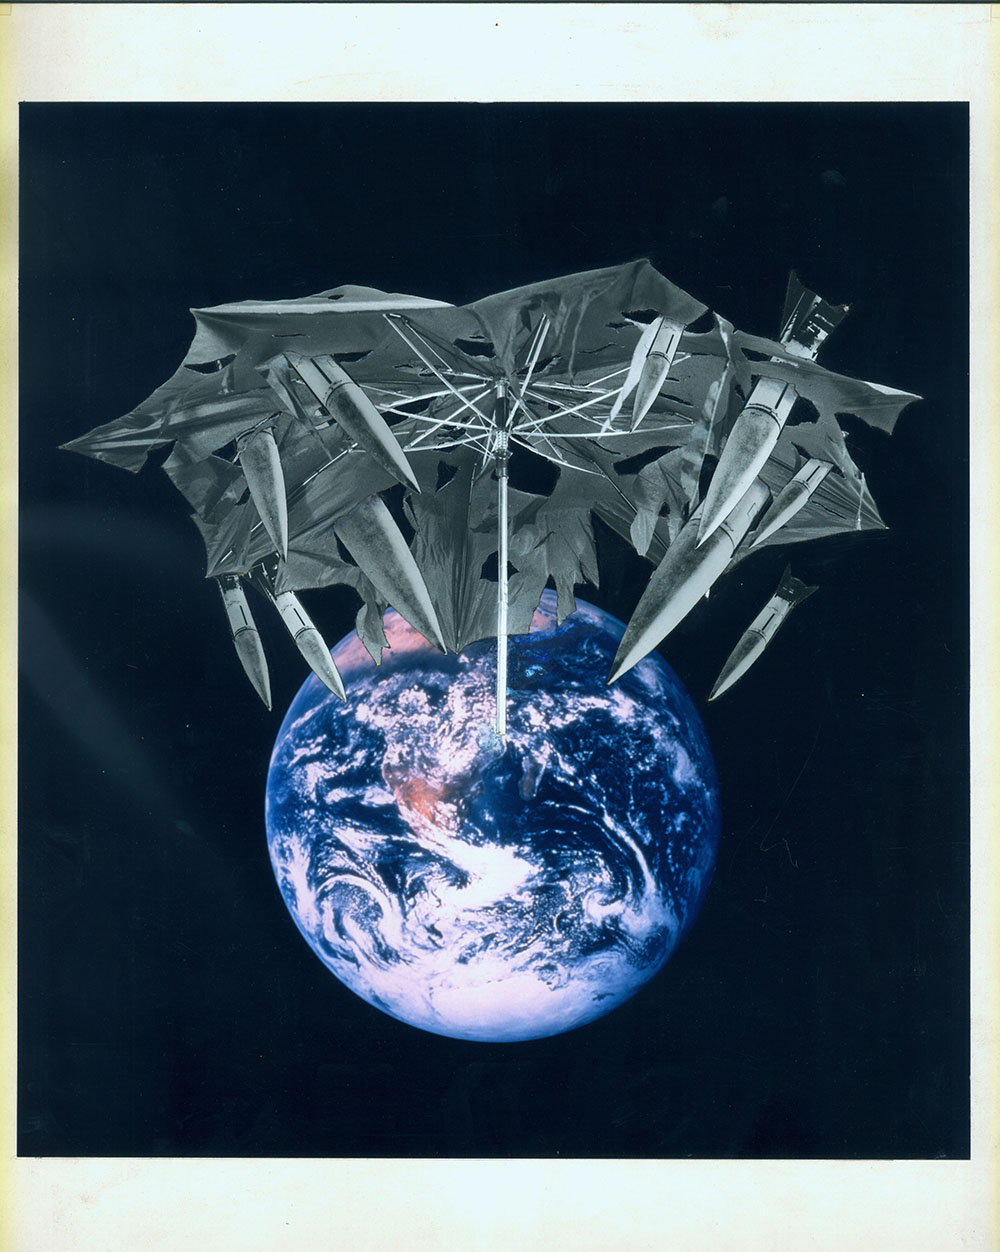 Earth (Star Wars) - PhotomontageGelatin silver and cibachromeprint on card1988First published:New Scientist, 1st Sept 1988Catalogue: PK/93